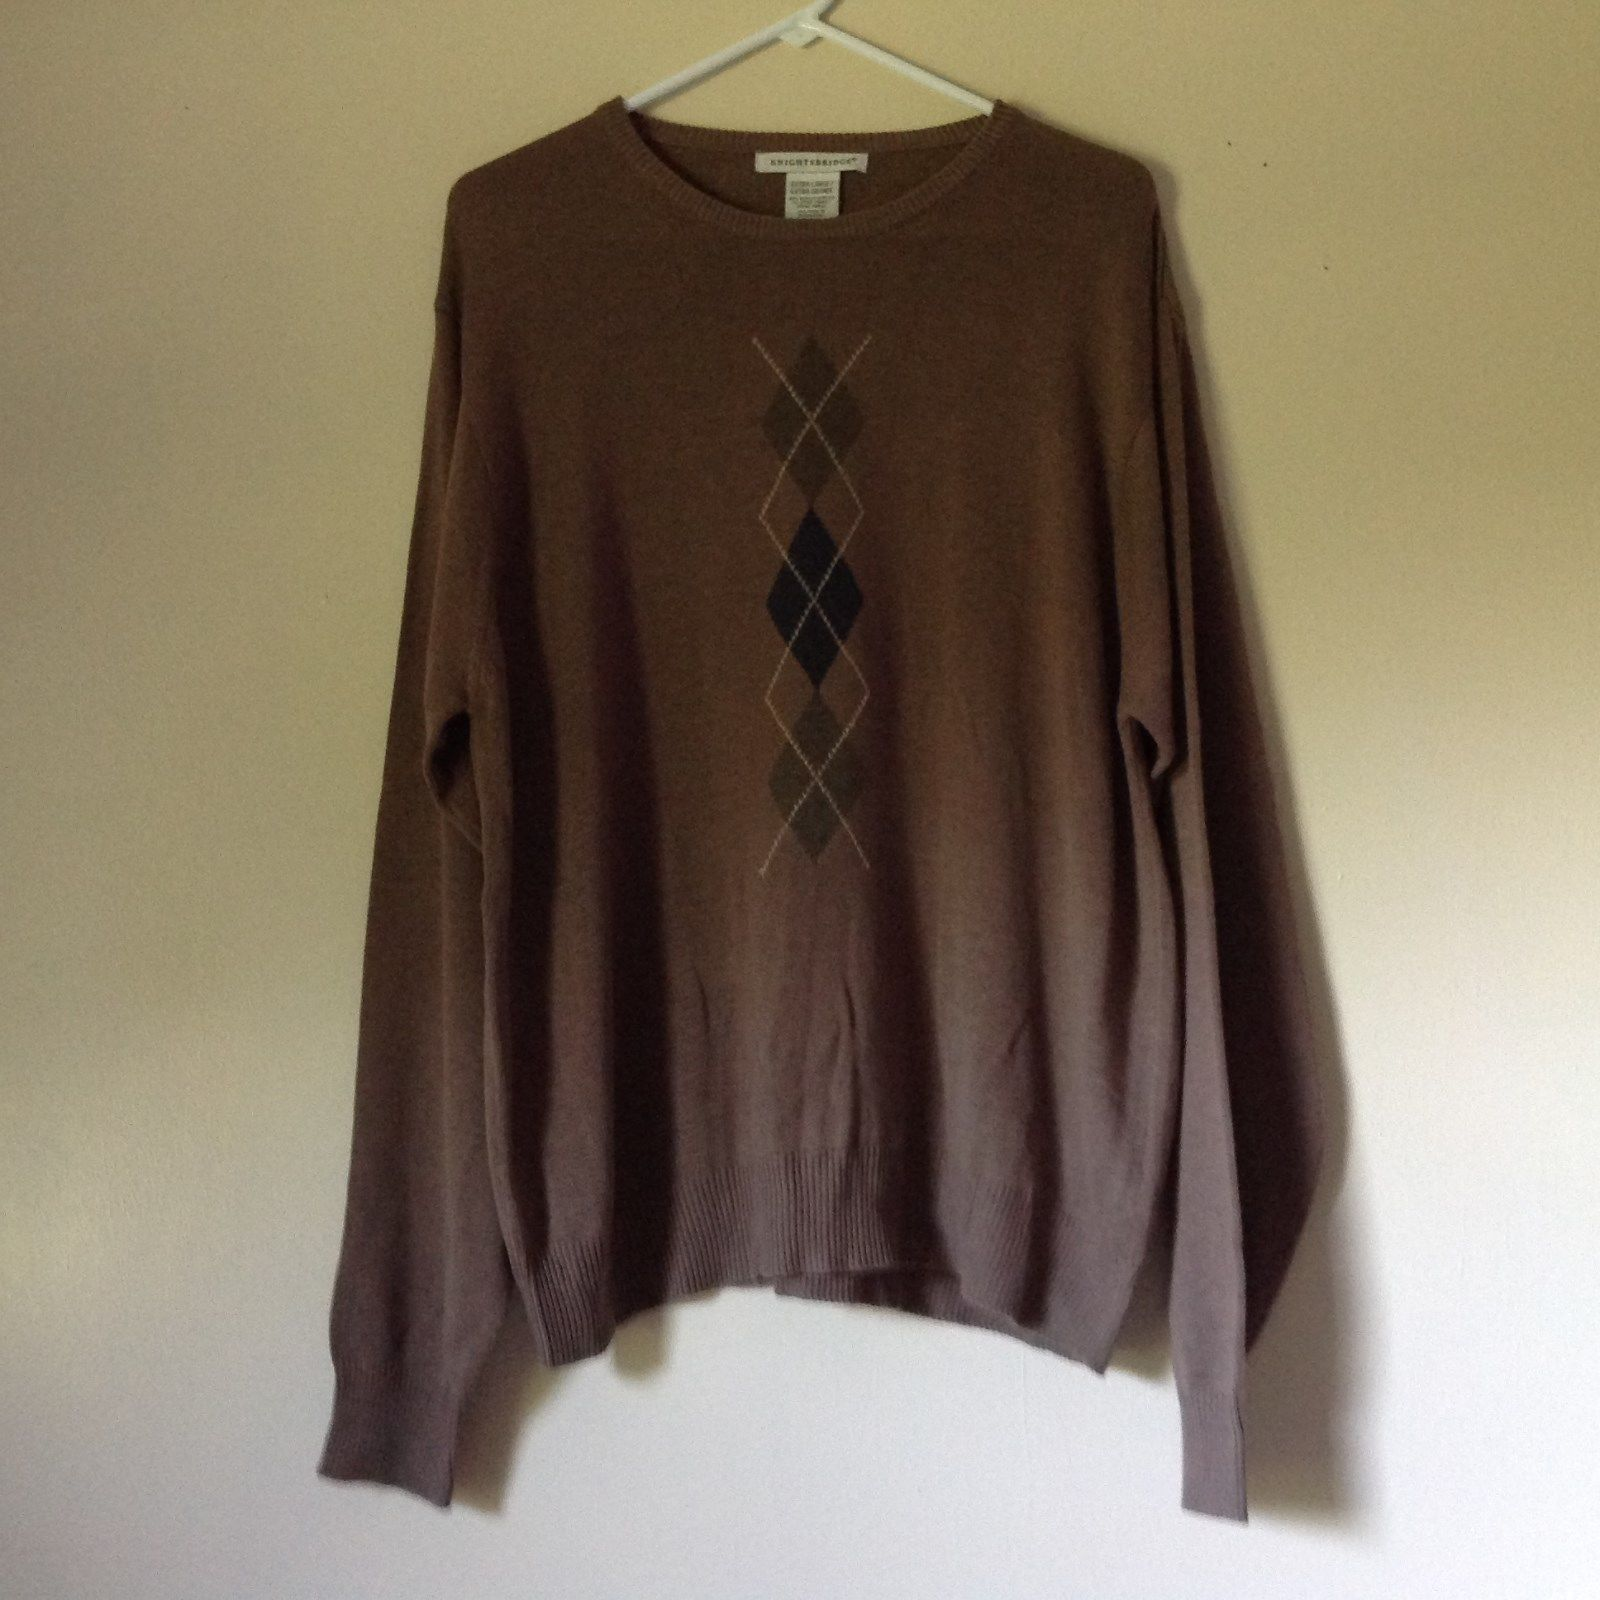 Knightsbridge Long Sleeve Brown Sweater Size XL